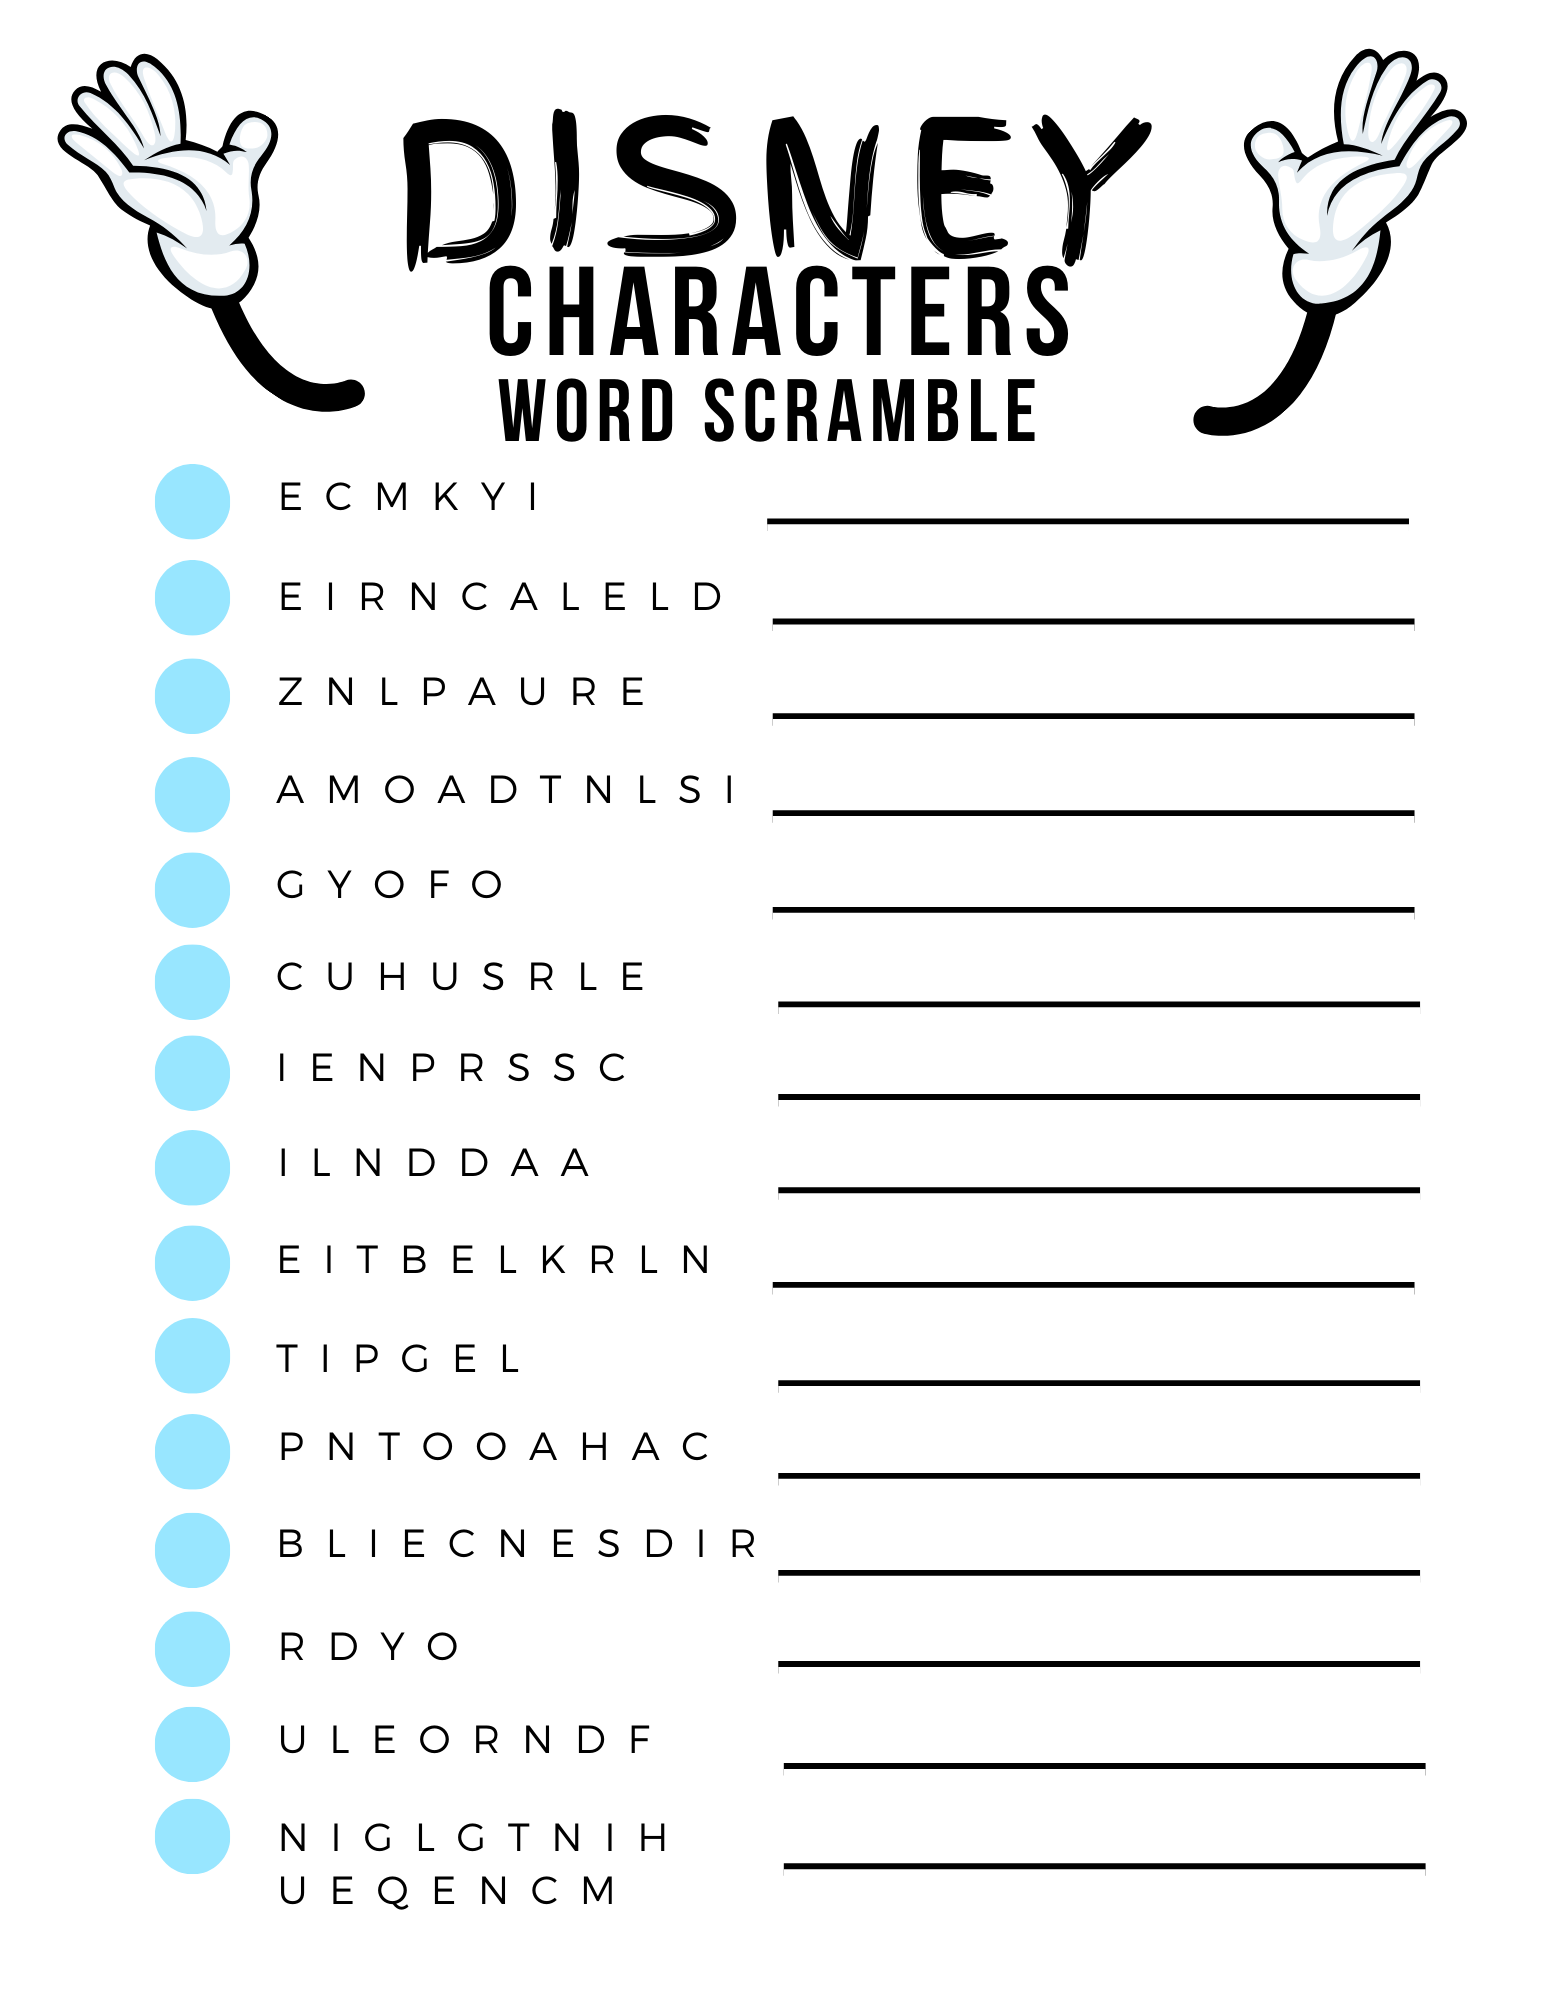 Disney Word Scramble Game FREE printable featured by top US Disney blogger, Marcie and the Mouse.